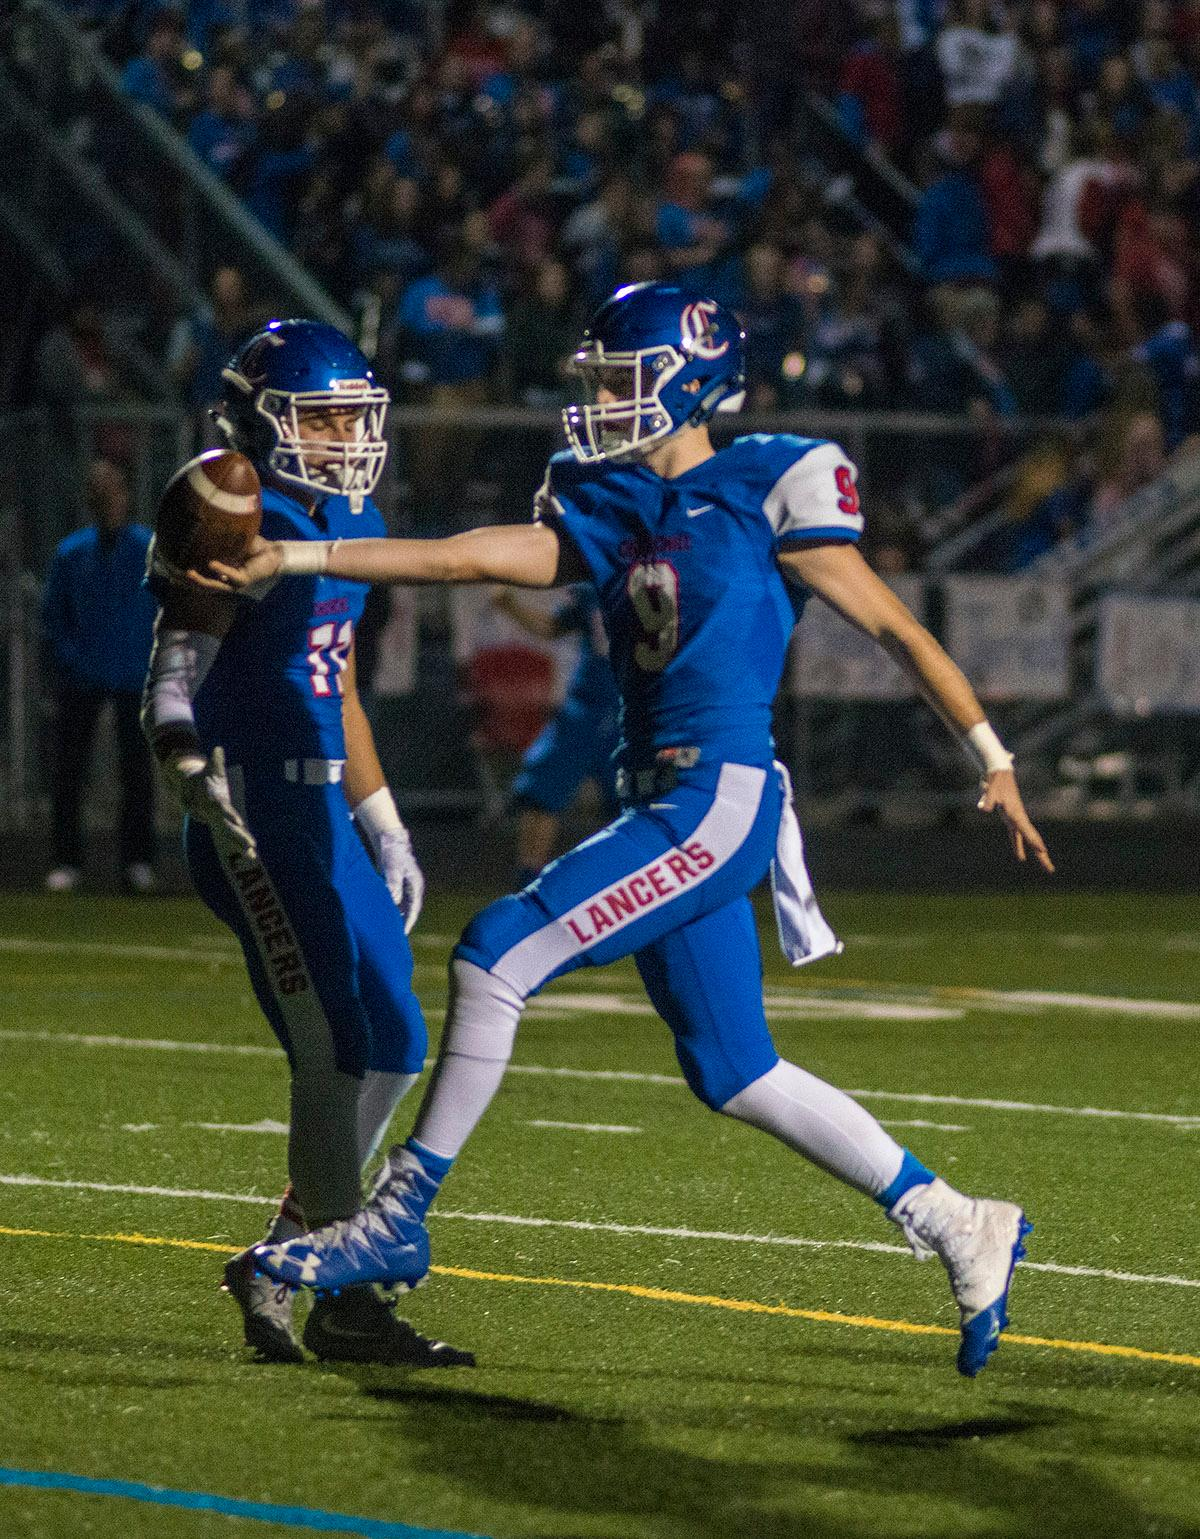 Churchill Lancers Jack Blackburn (#9) carries the ball into the end zone for a touchdown. Churchill defeated Crater 63-21 on Friday at their homecoming game. Churchill remains undefeated with a conference record of 9-0. Photo by Rhianna Gelhart, Oregon News Lab